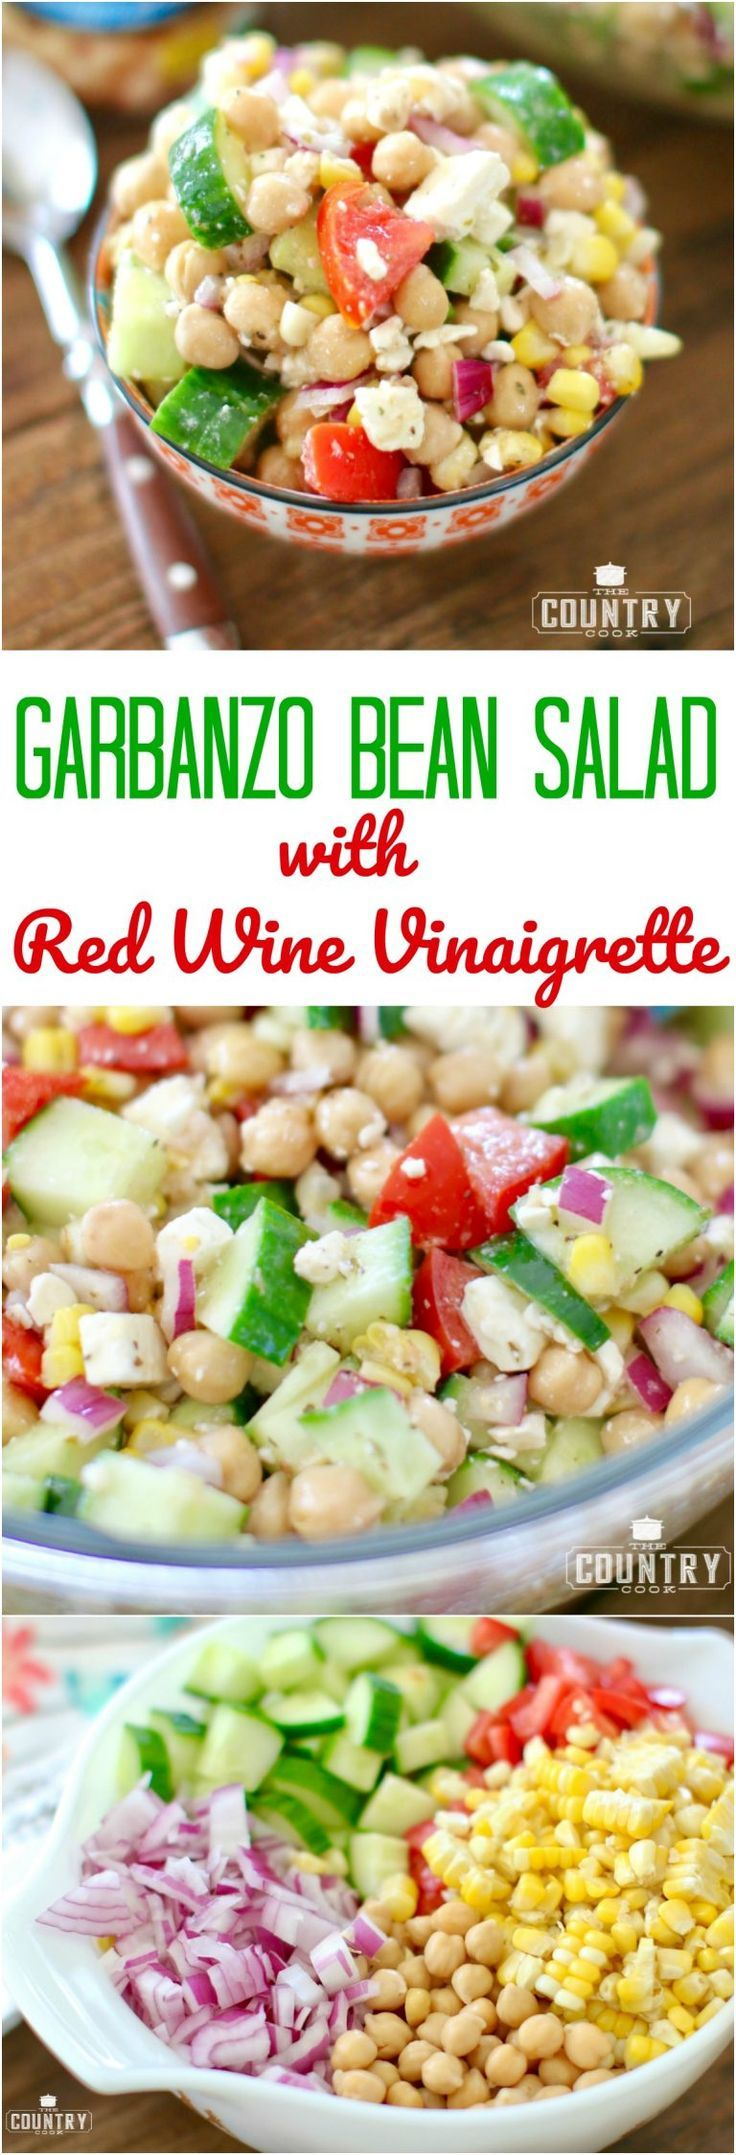 Garbanzo Bean Salad with Red Wine Vinaigrette recipe from The Country Cook